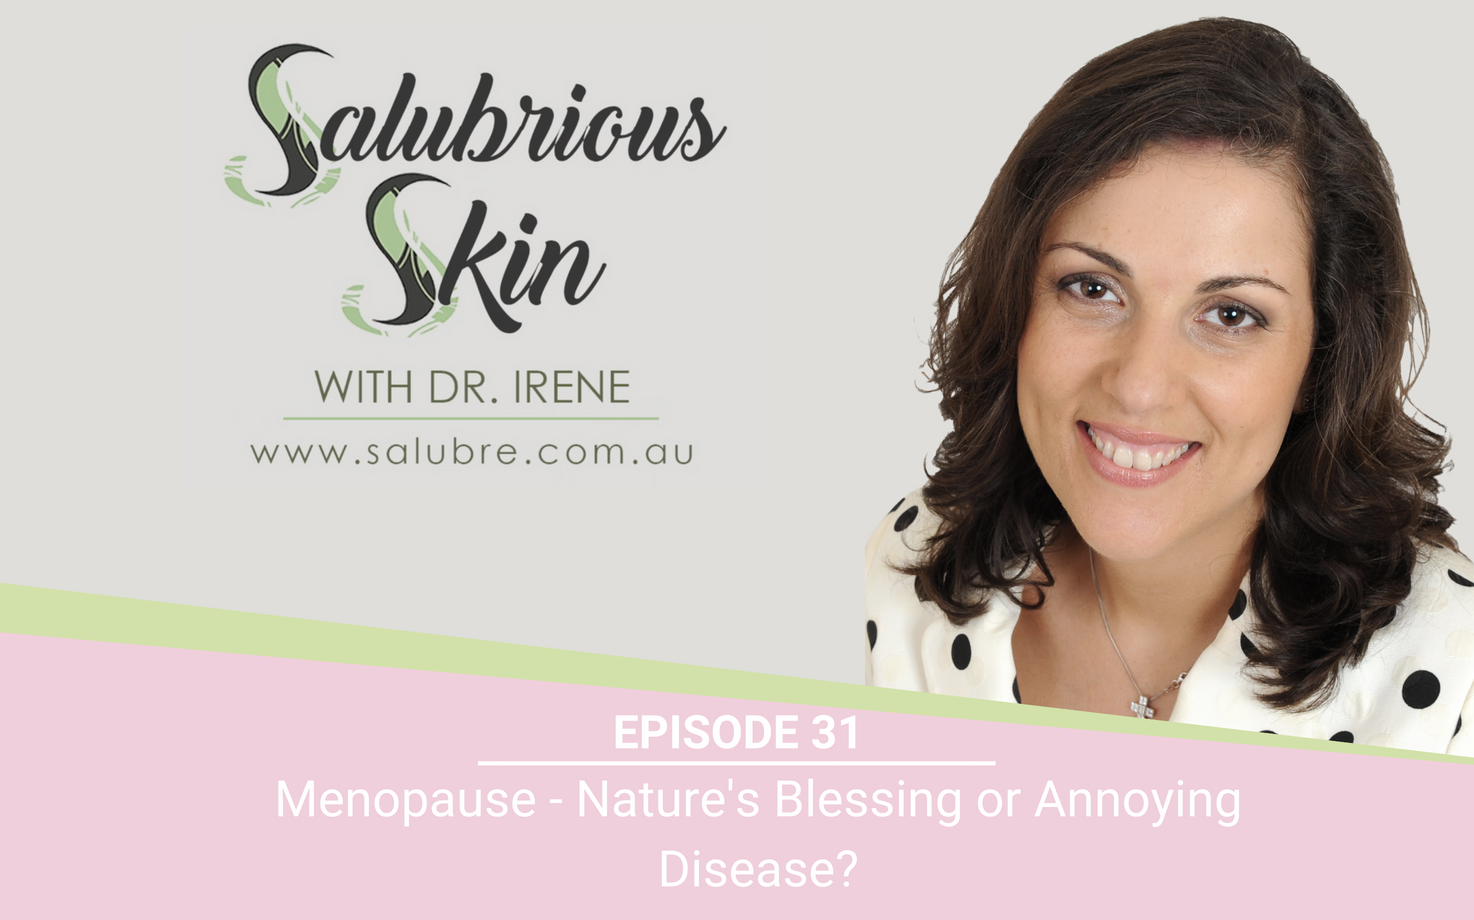 Podcast 31: Menopause - Nature's Blessing or Annoying Disease?